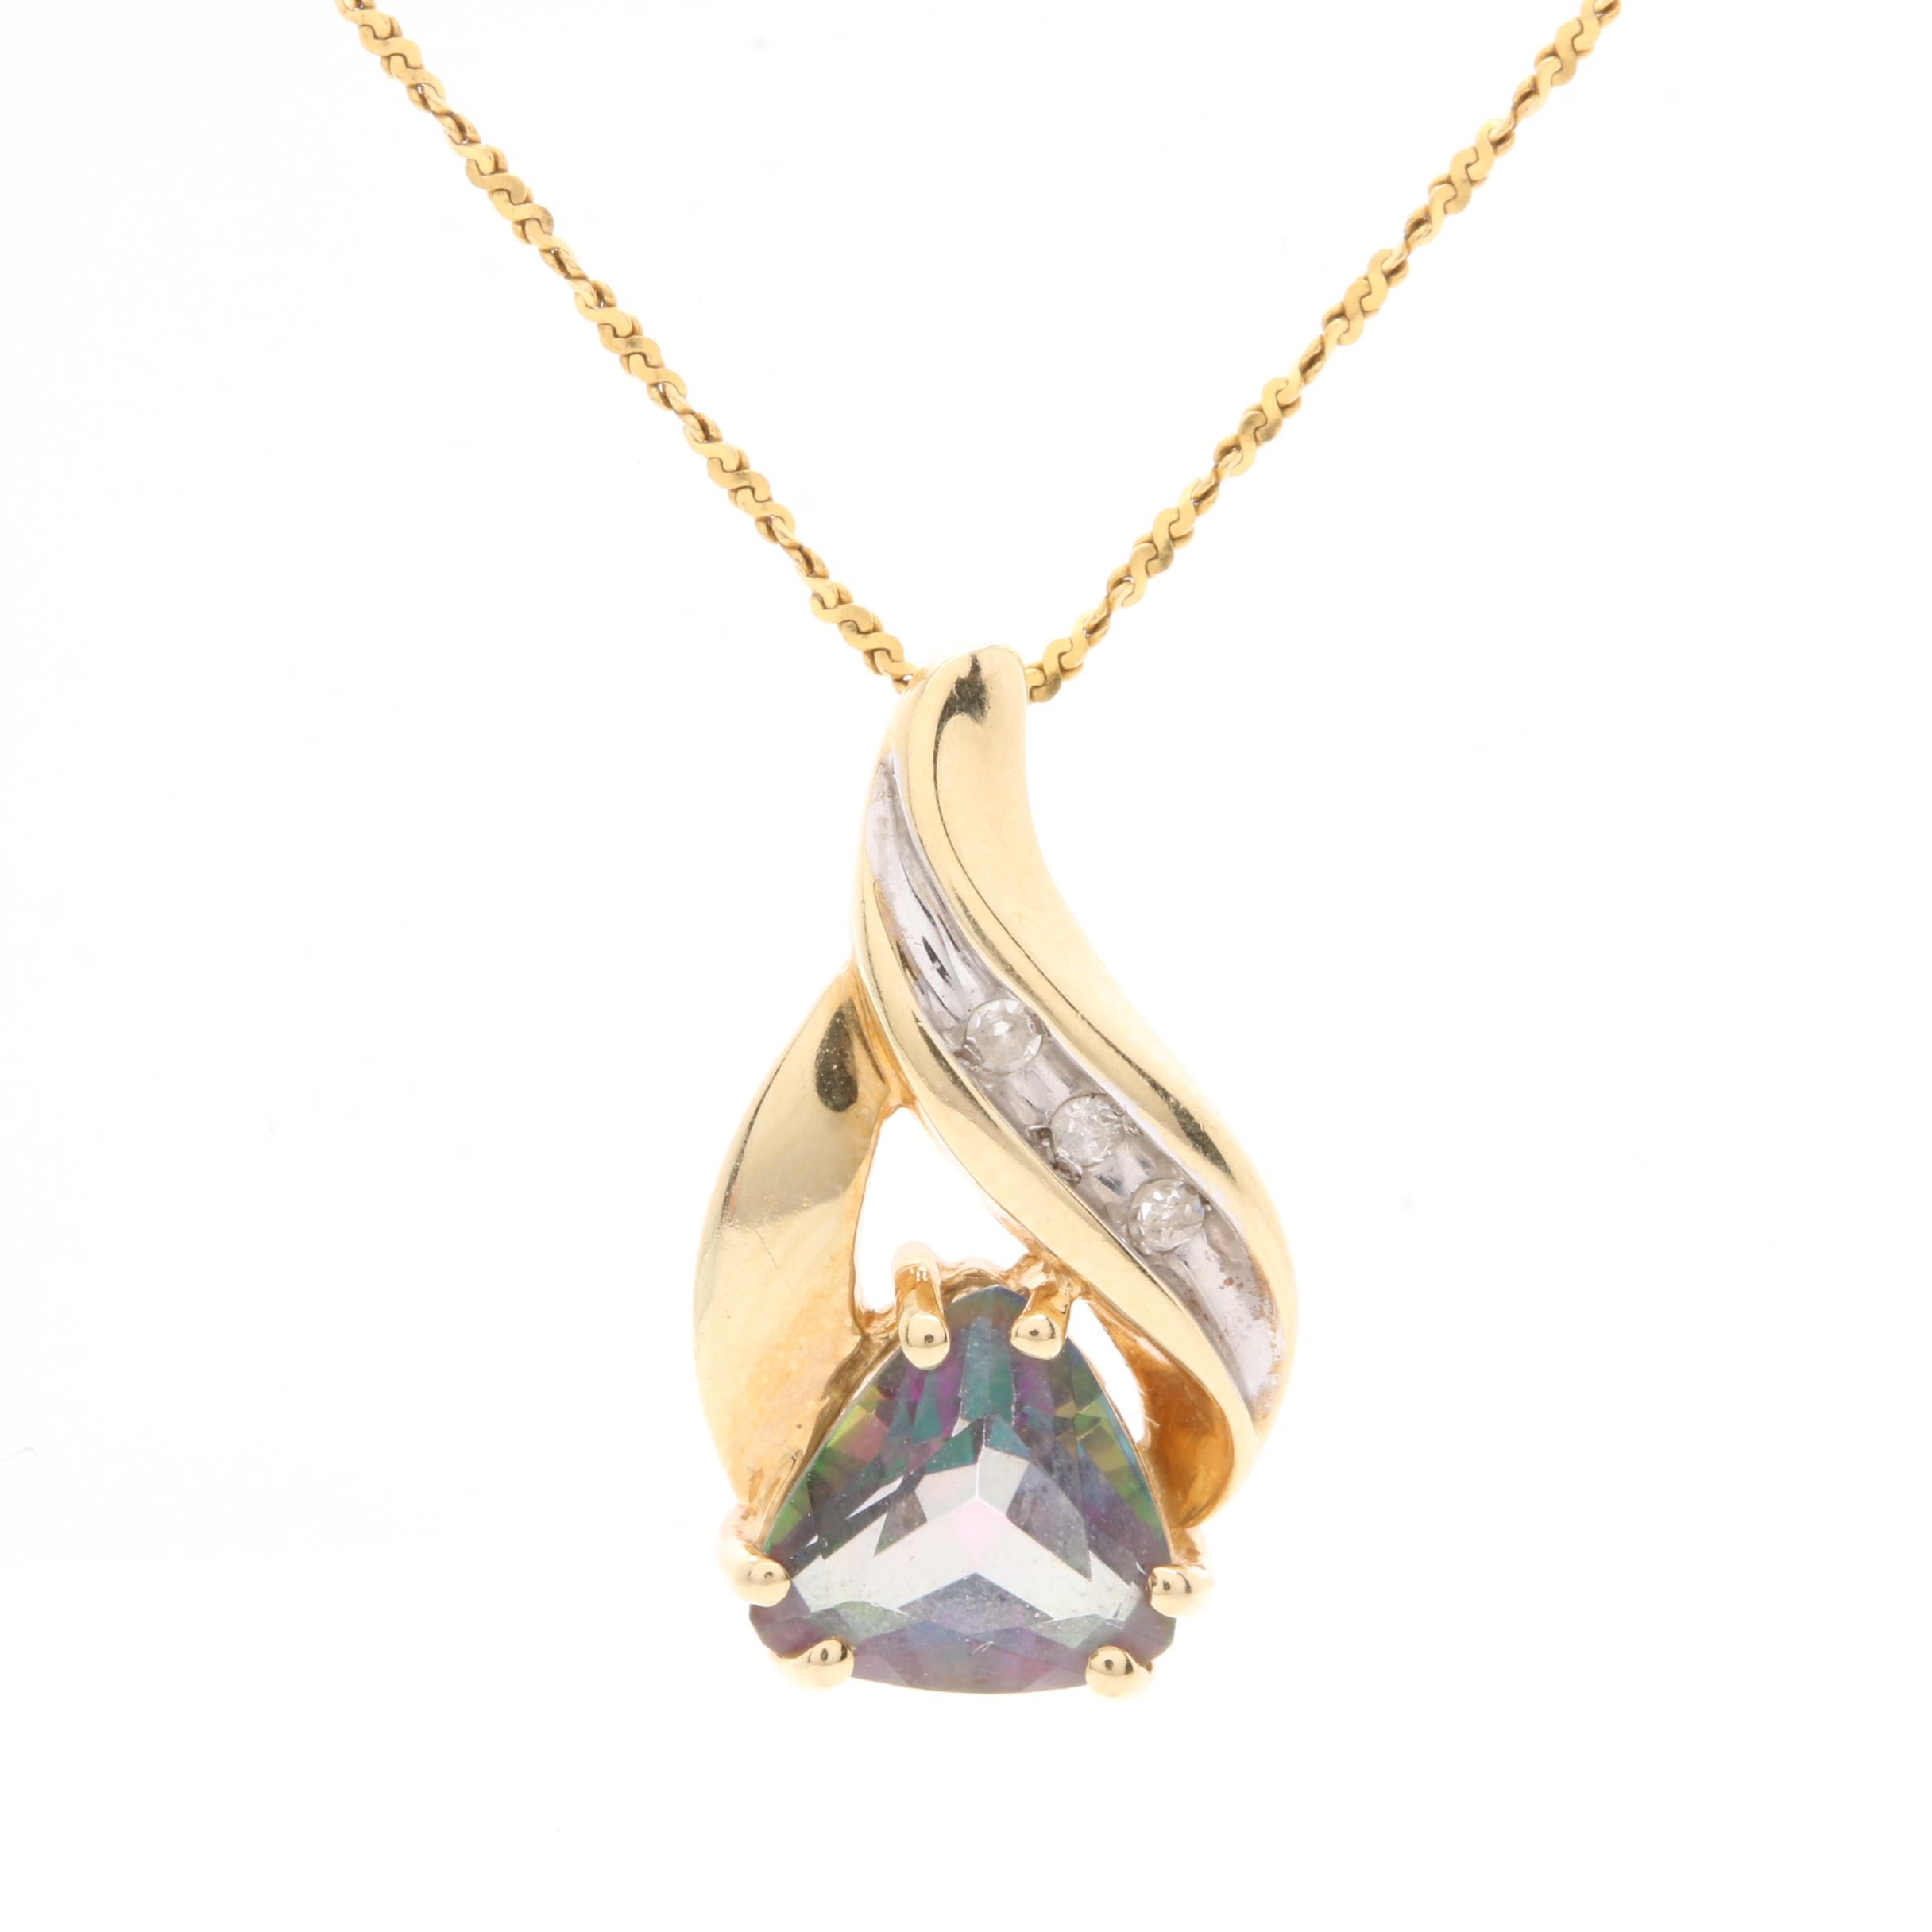 10K and 14K Yellow Gold Mystic Topaz and Diamond Pendant Necklace